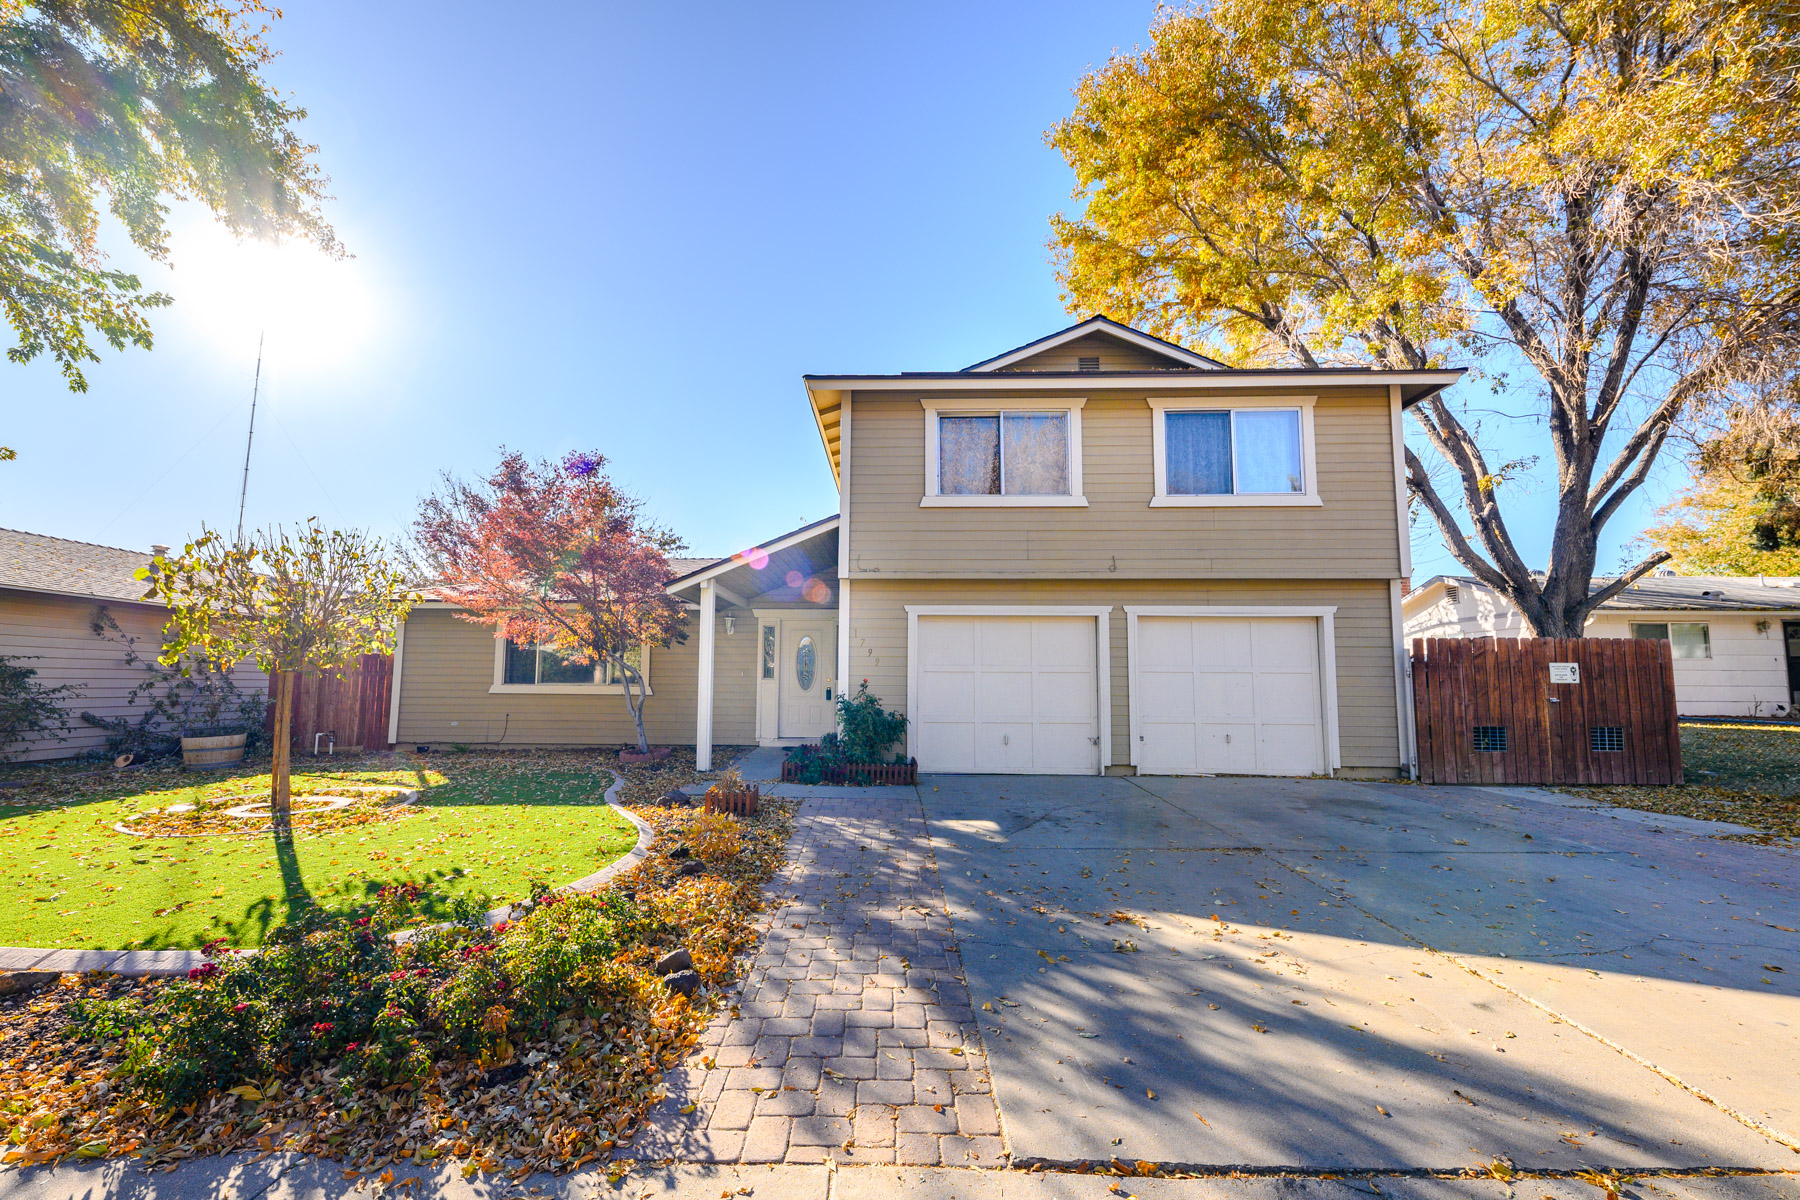 Single Family Homes for Active at 1799 Matteoni Drive, Sparks NV, 89434 1799 Matteoni Drive Sparks, Nevada 89434 United States